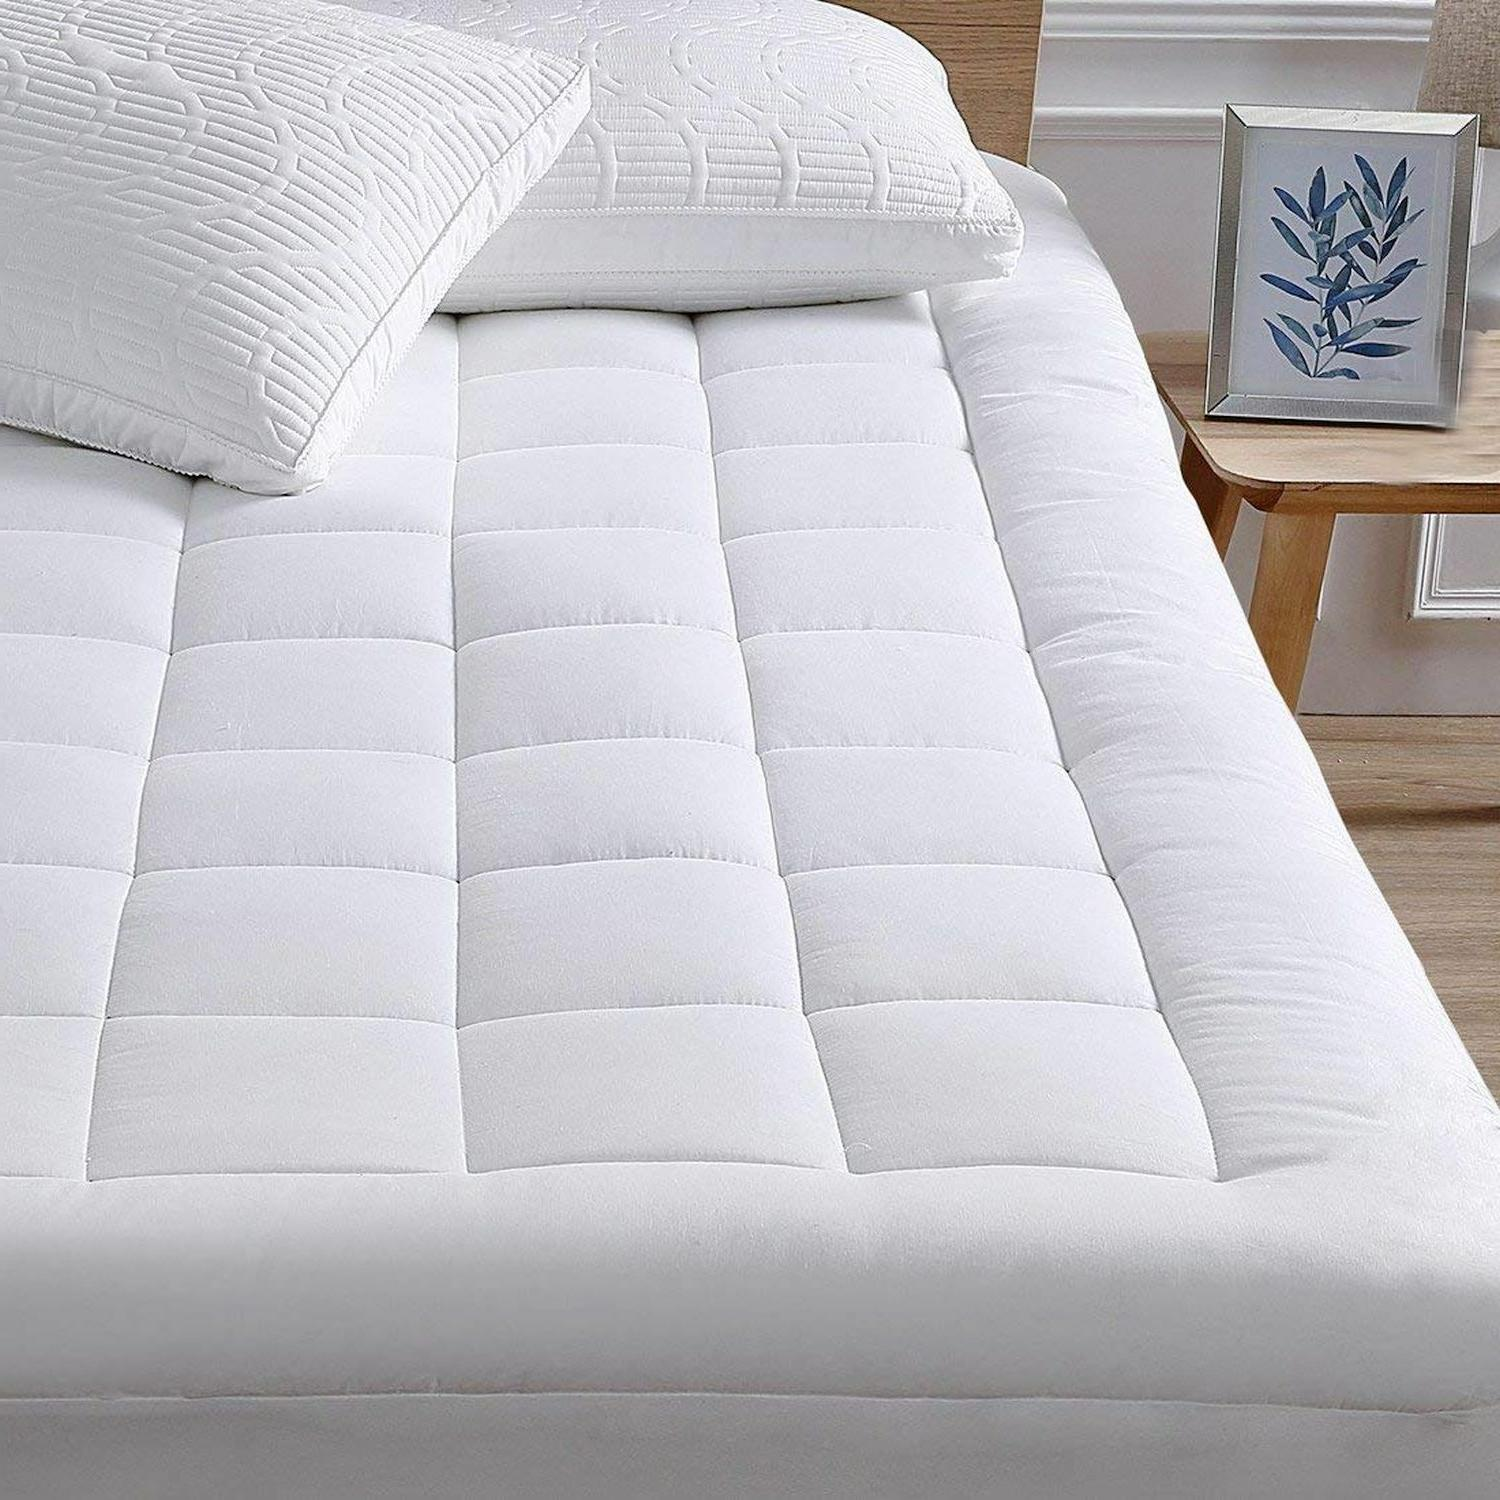 mattress pad cover cooling mattress topper combed